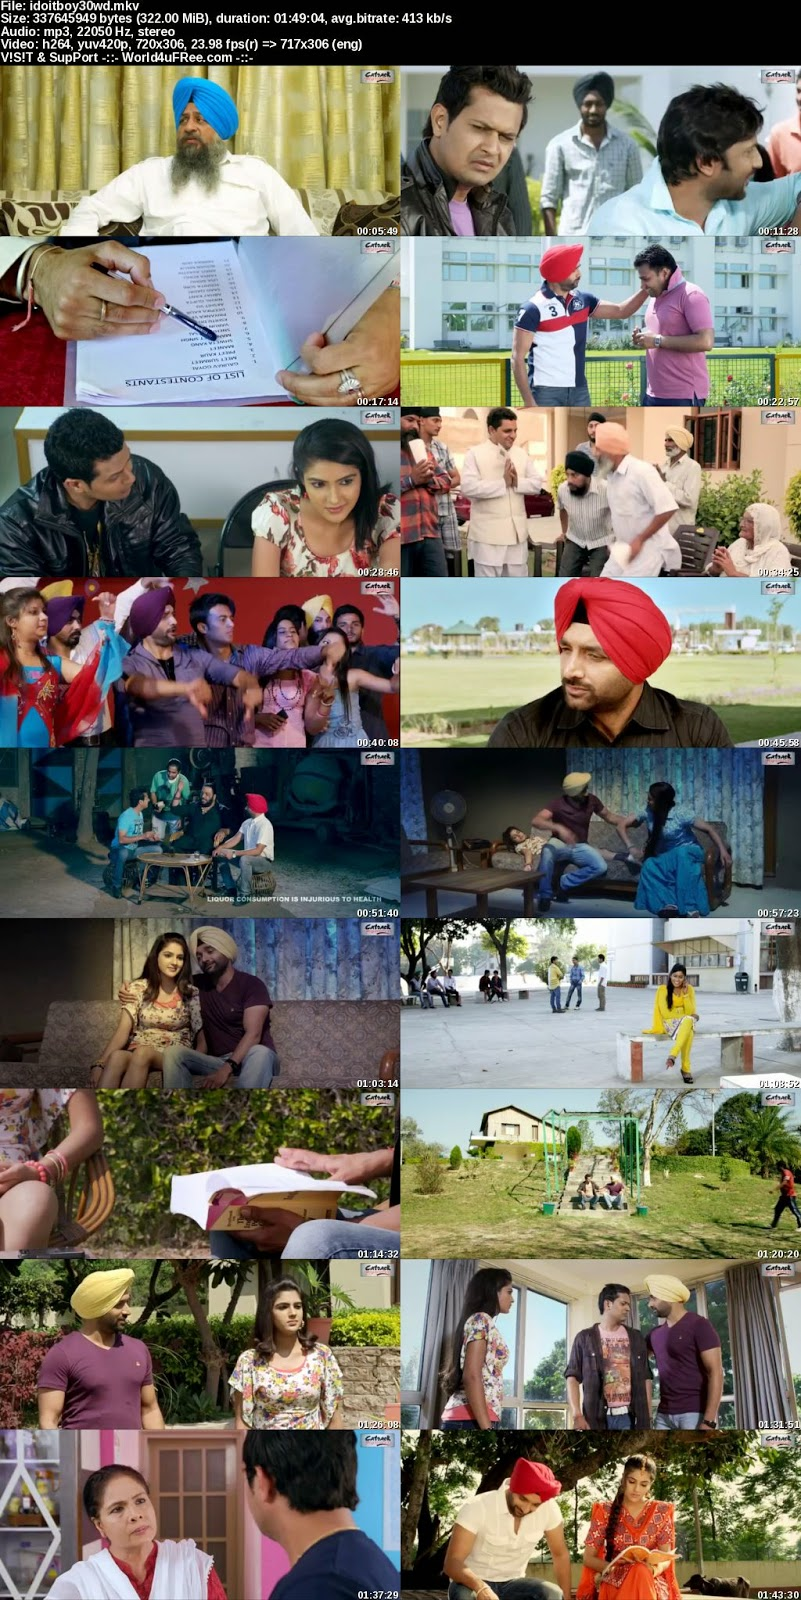 idoitboy30wd s Idiot Boys (2014) Punjabi Movie Download In 300MB